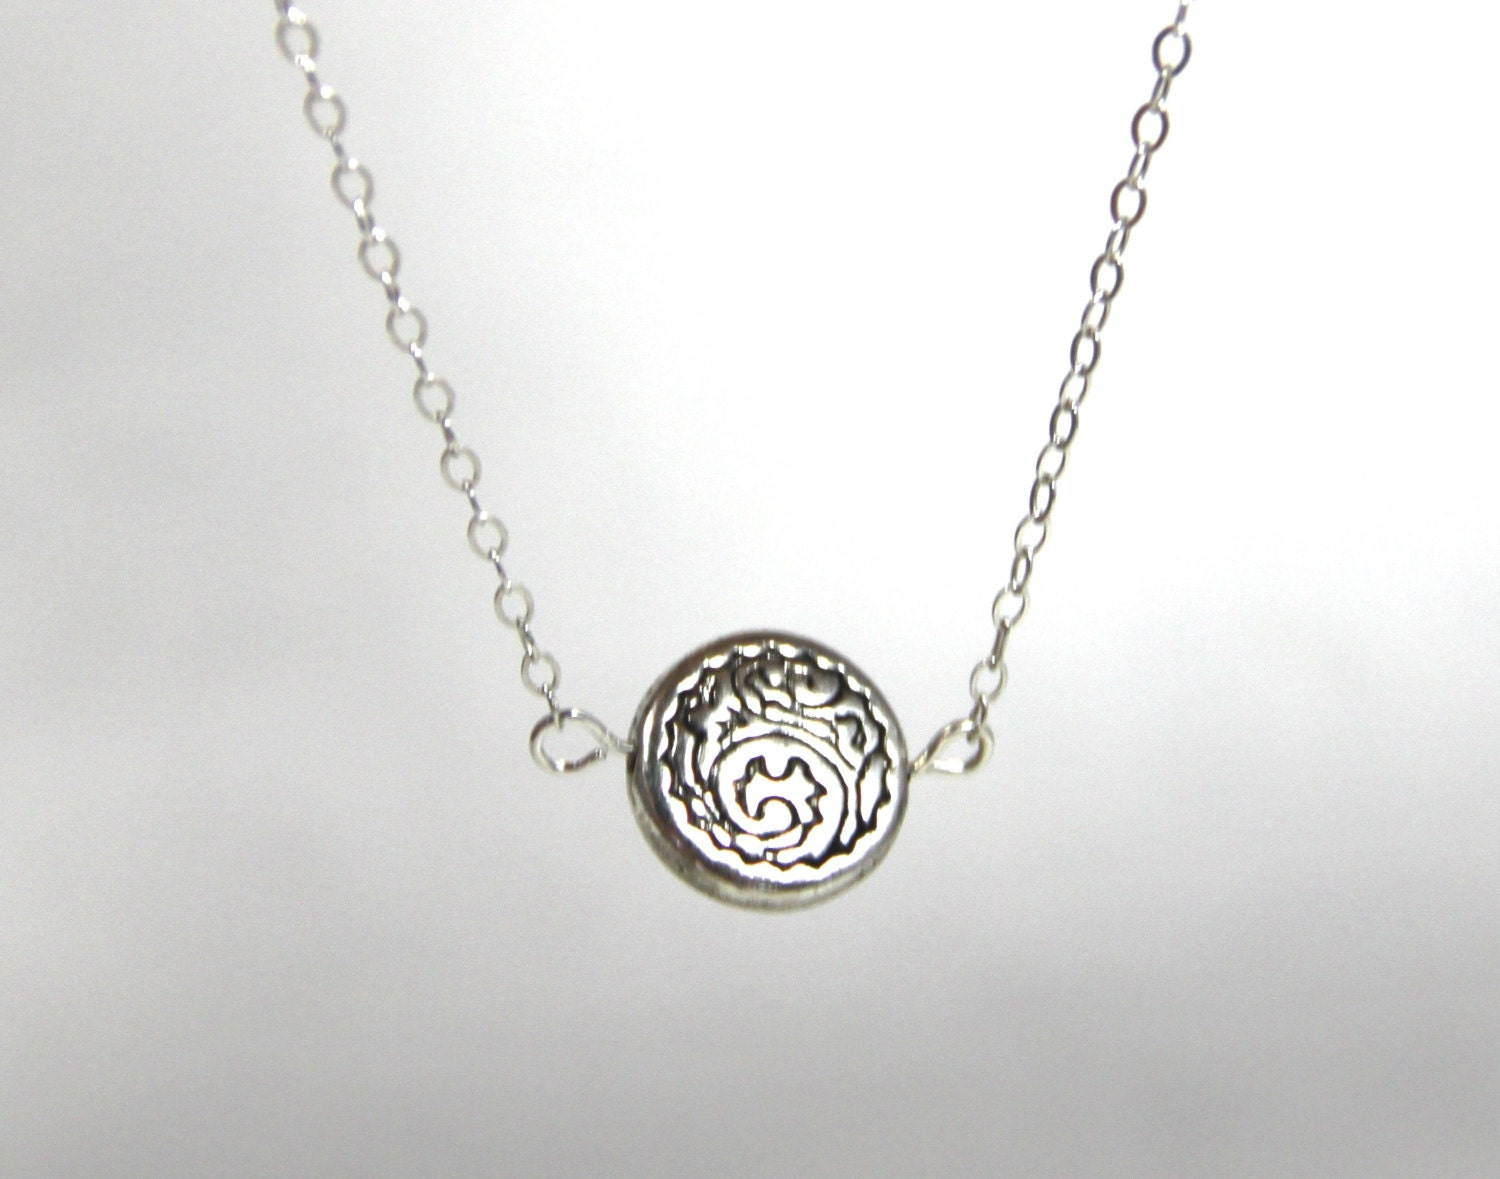 Round silver engraved pendant silver charm pendant layered necklace round silver engraved pendant silver charm pendant layered necklace sterling silver chain boho pendant ocean inspired lucky friendship gift mozeypictures Images